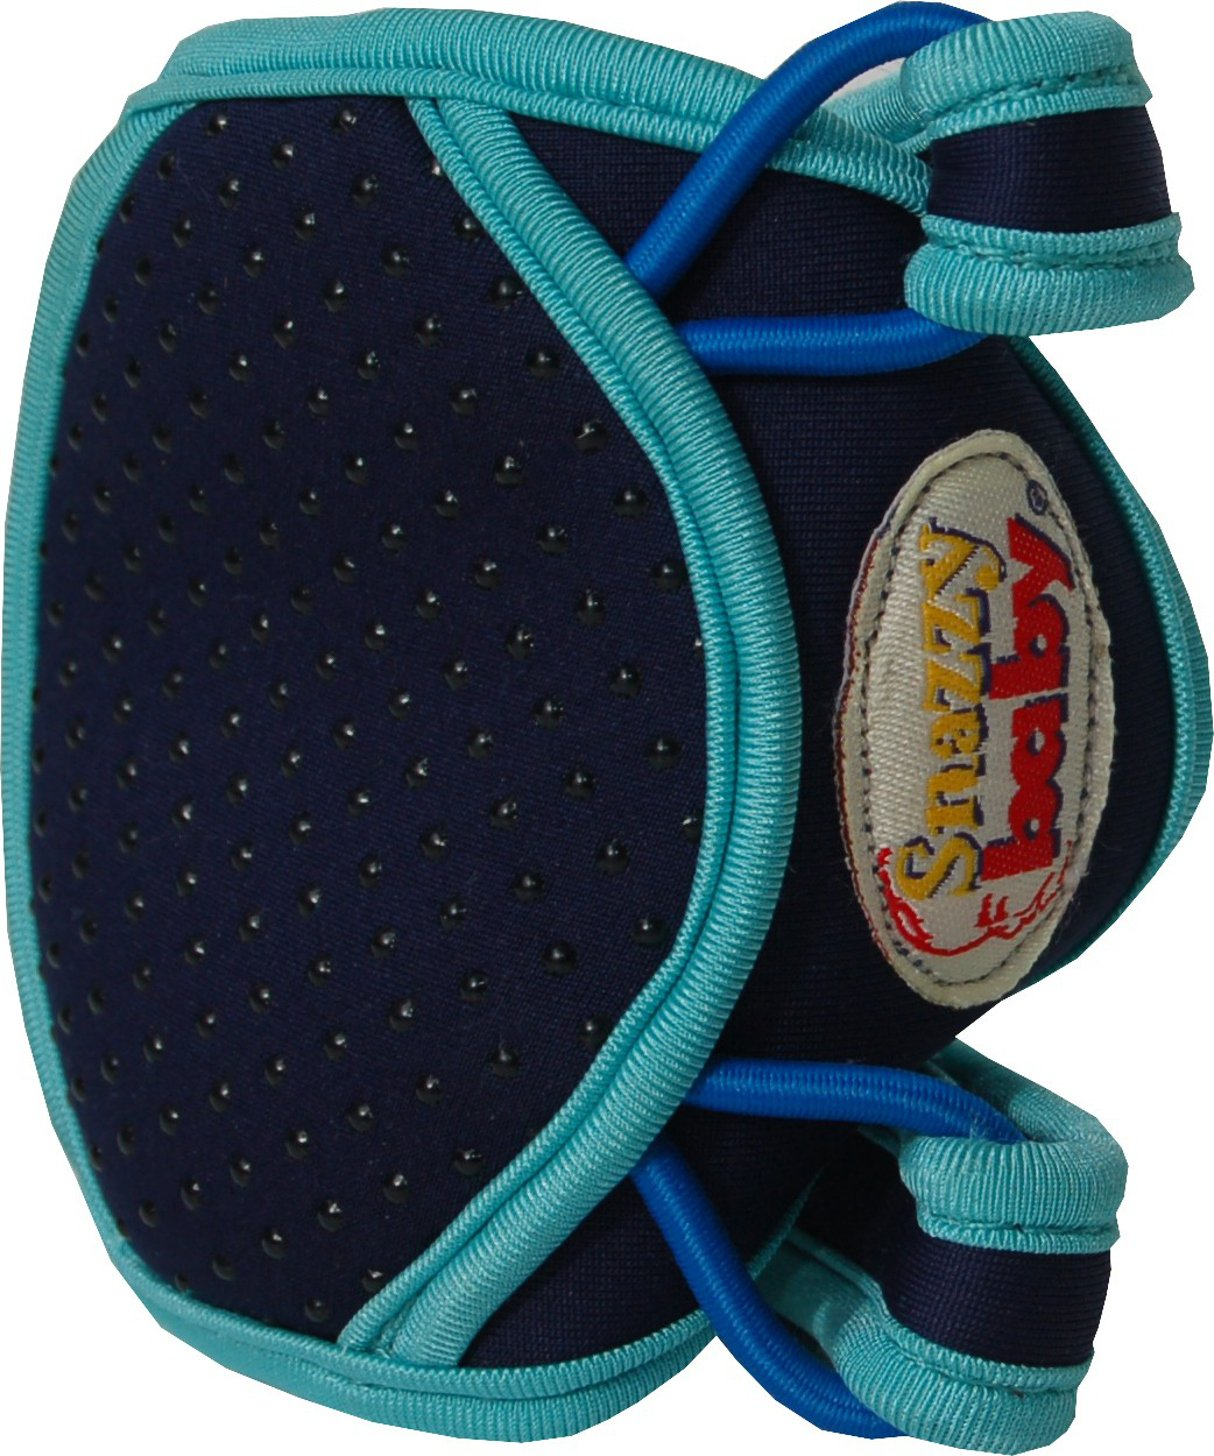 Top 9 Best Baby Knee Pads for Crawling Reviews in 2021 13